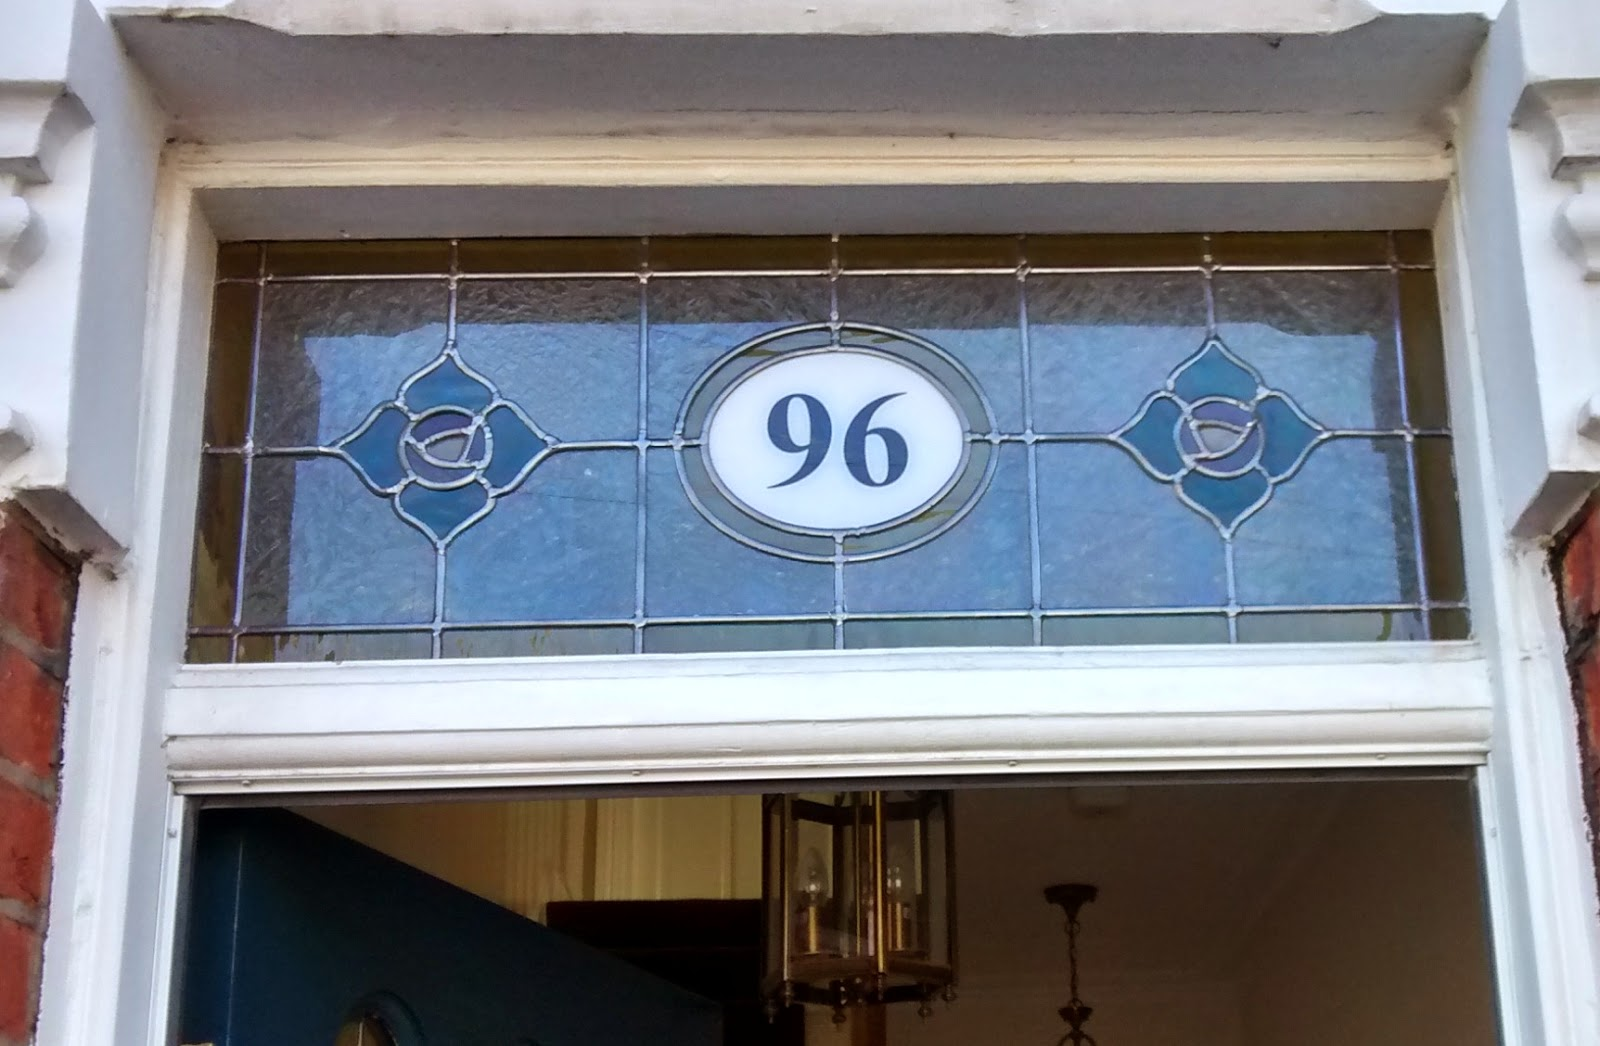 Stained glass with house number